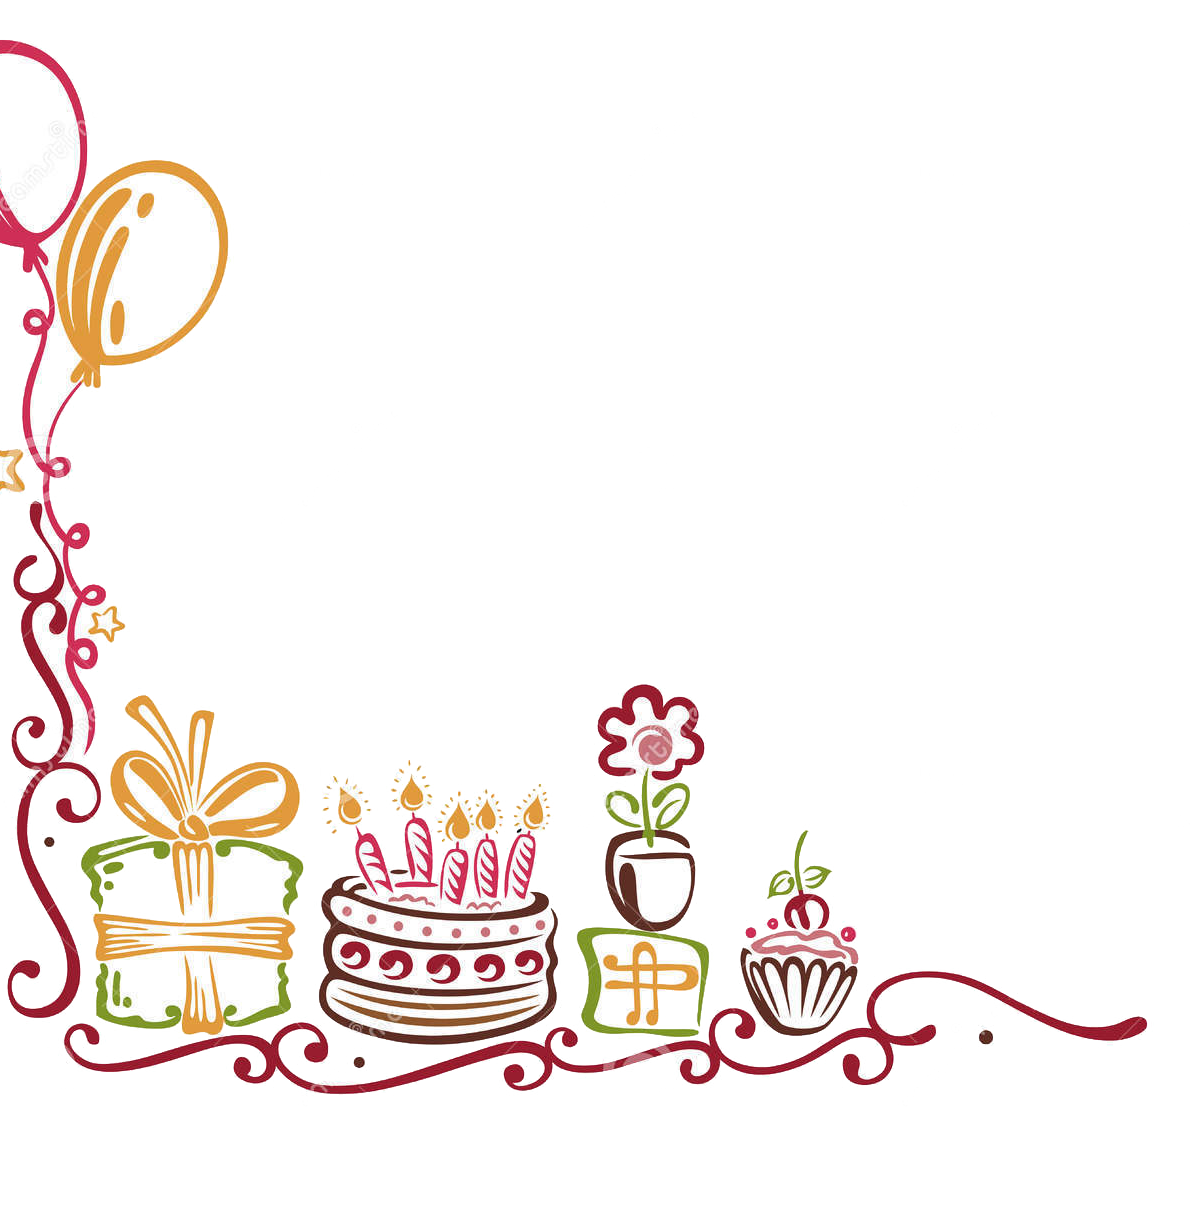 Birthday border the world 3